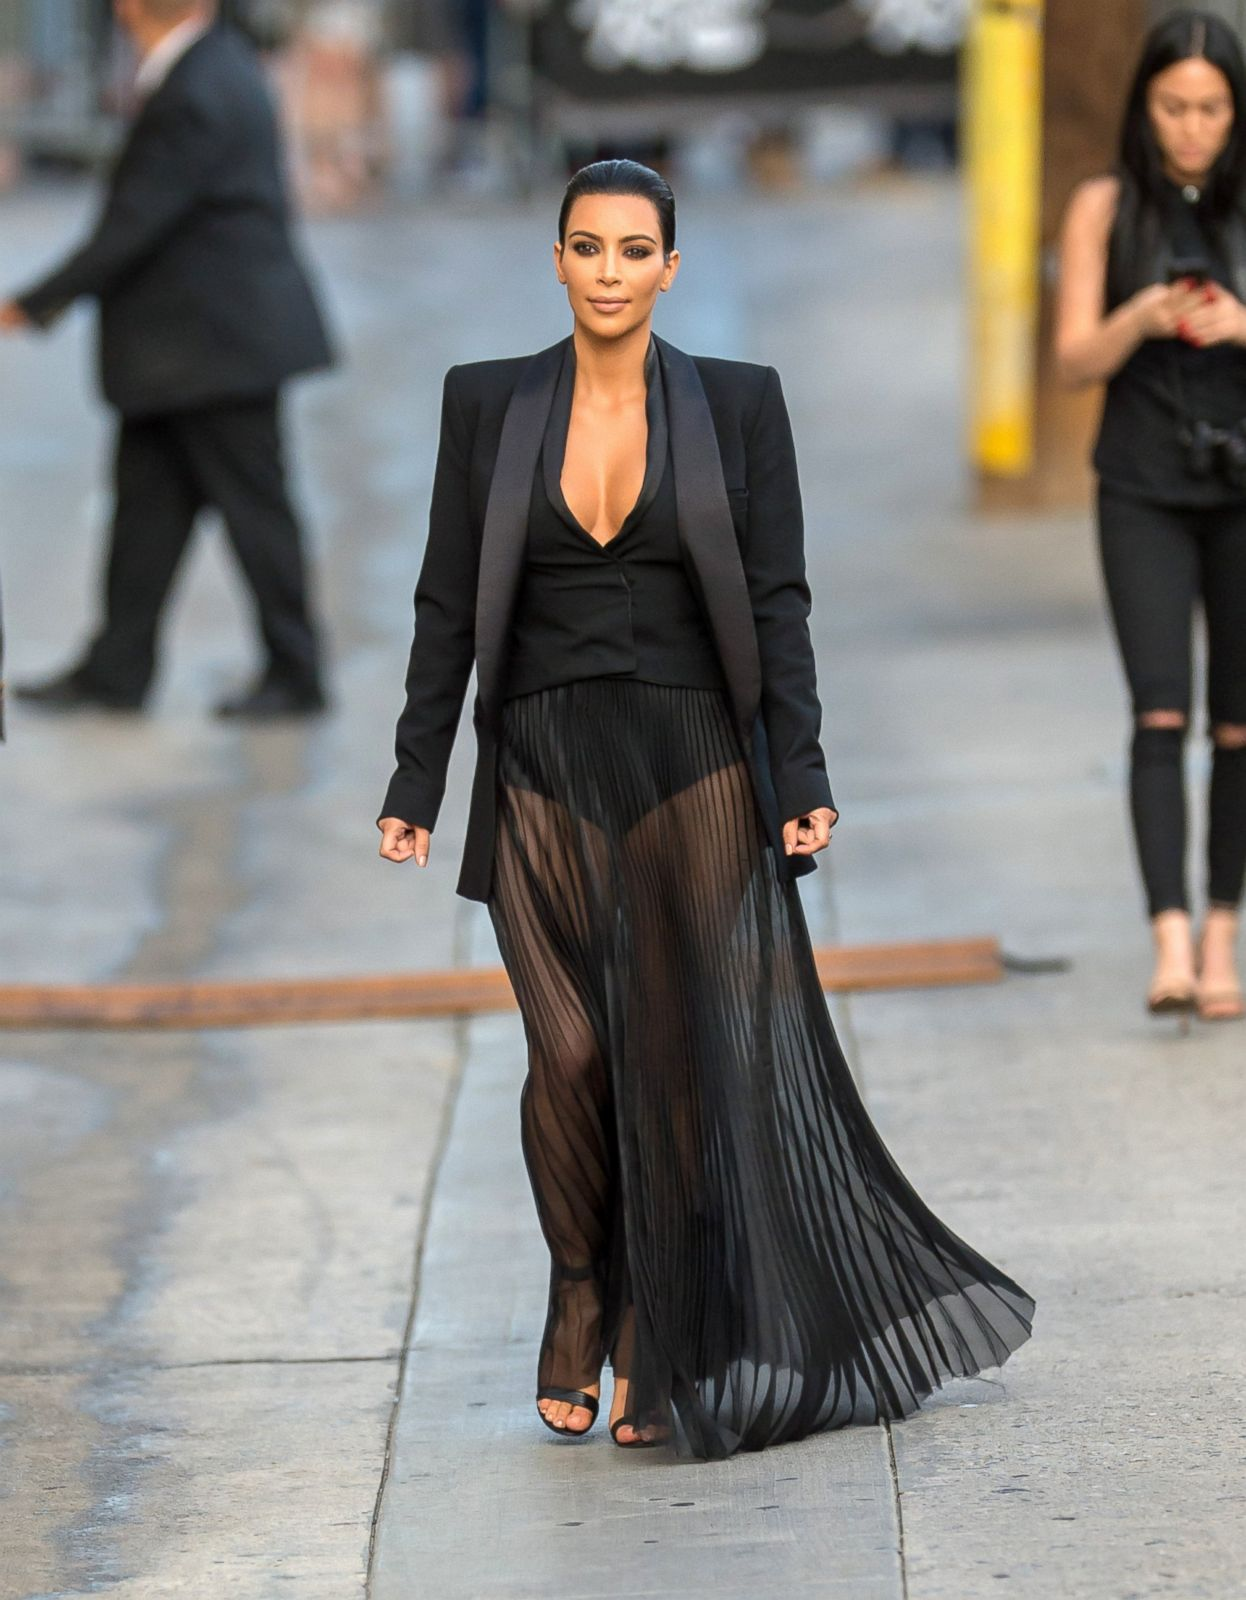 d647d5a33a Kim Kardashian Steps Out In Her Tiniest Cropped Top Yet Picture | Kim  Kardashian Through the Years - ABC News